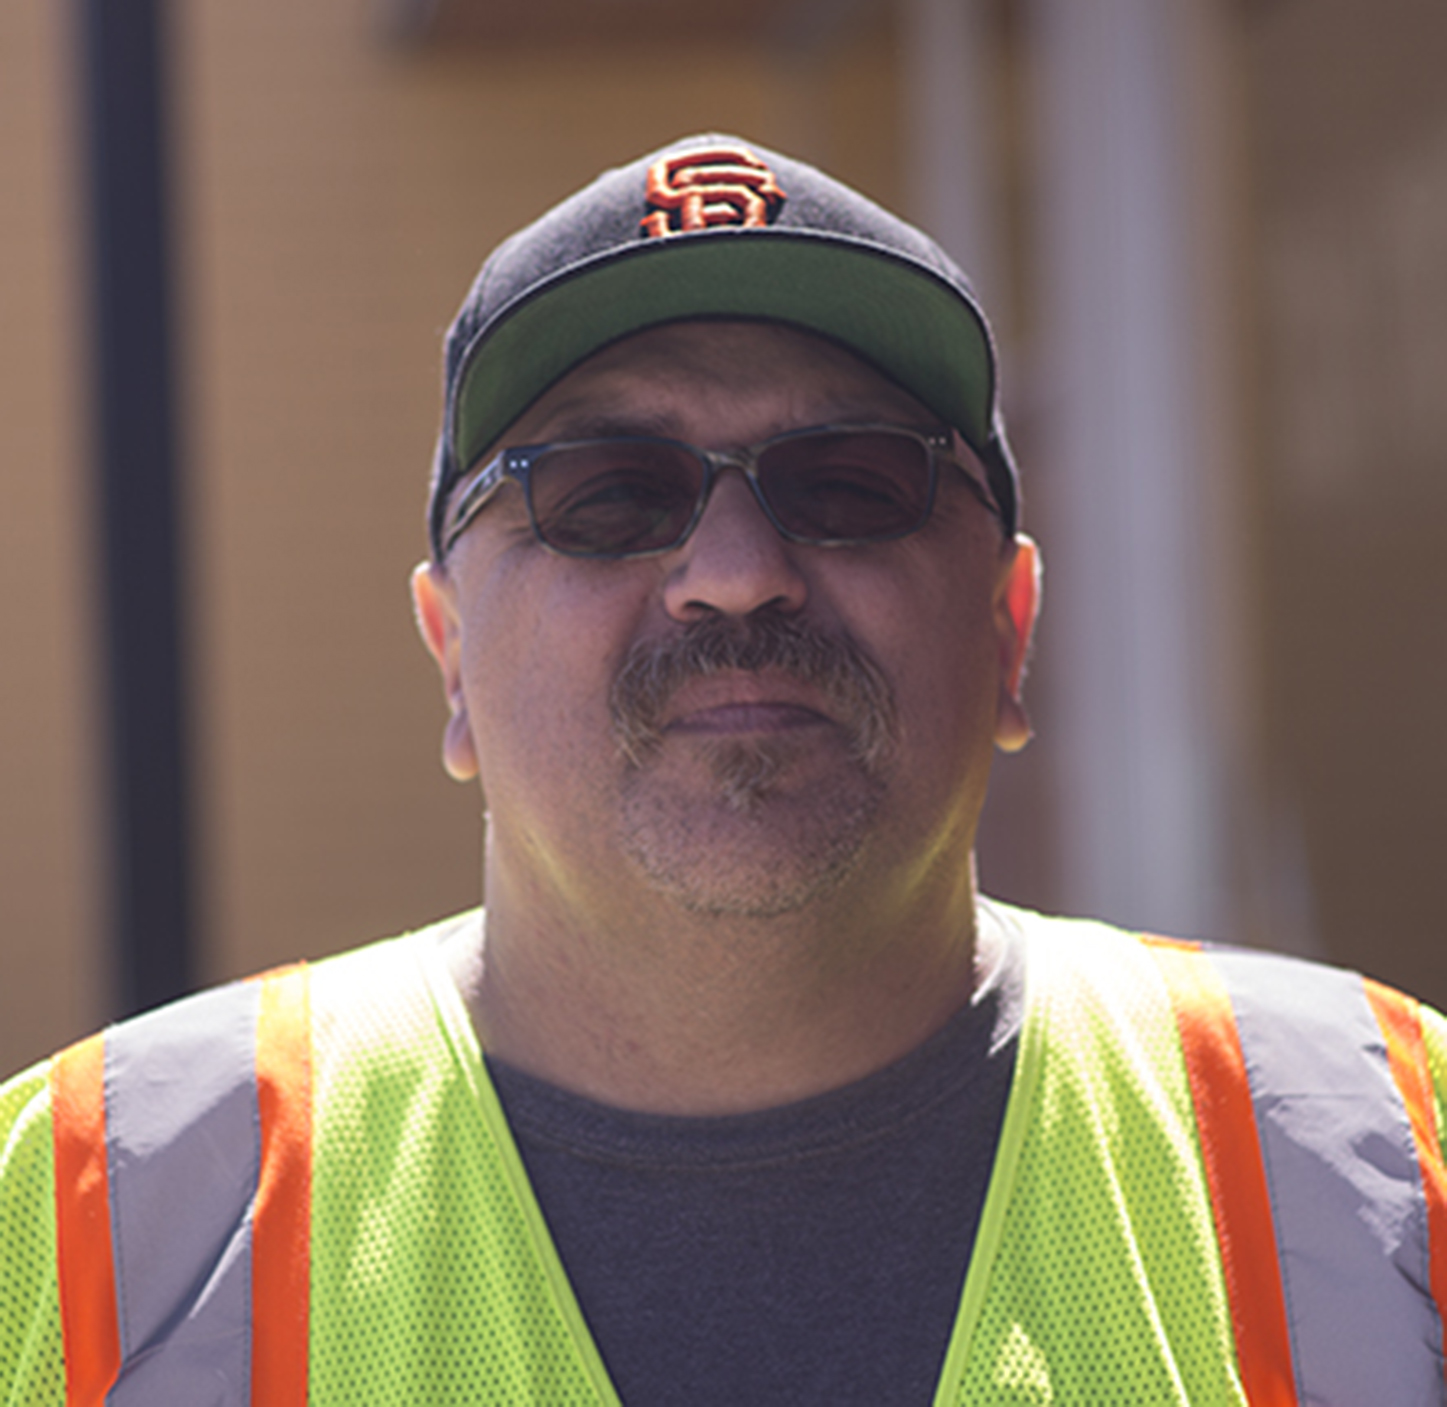 Mike Valladares  Components Safety Committeeman work: (650) 874-5100 cell: (650) 745-5869 mvalladares @teamstersSFO.com